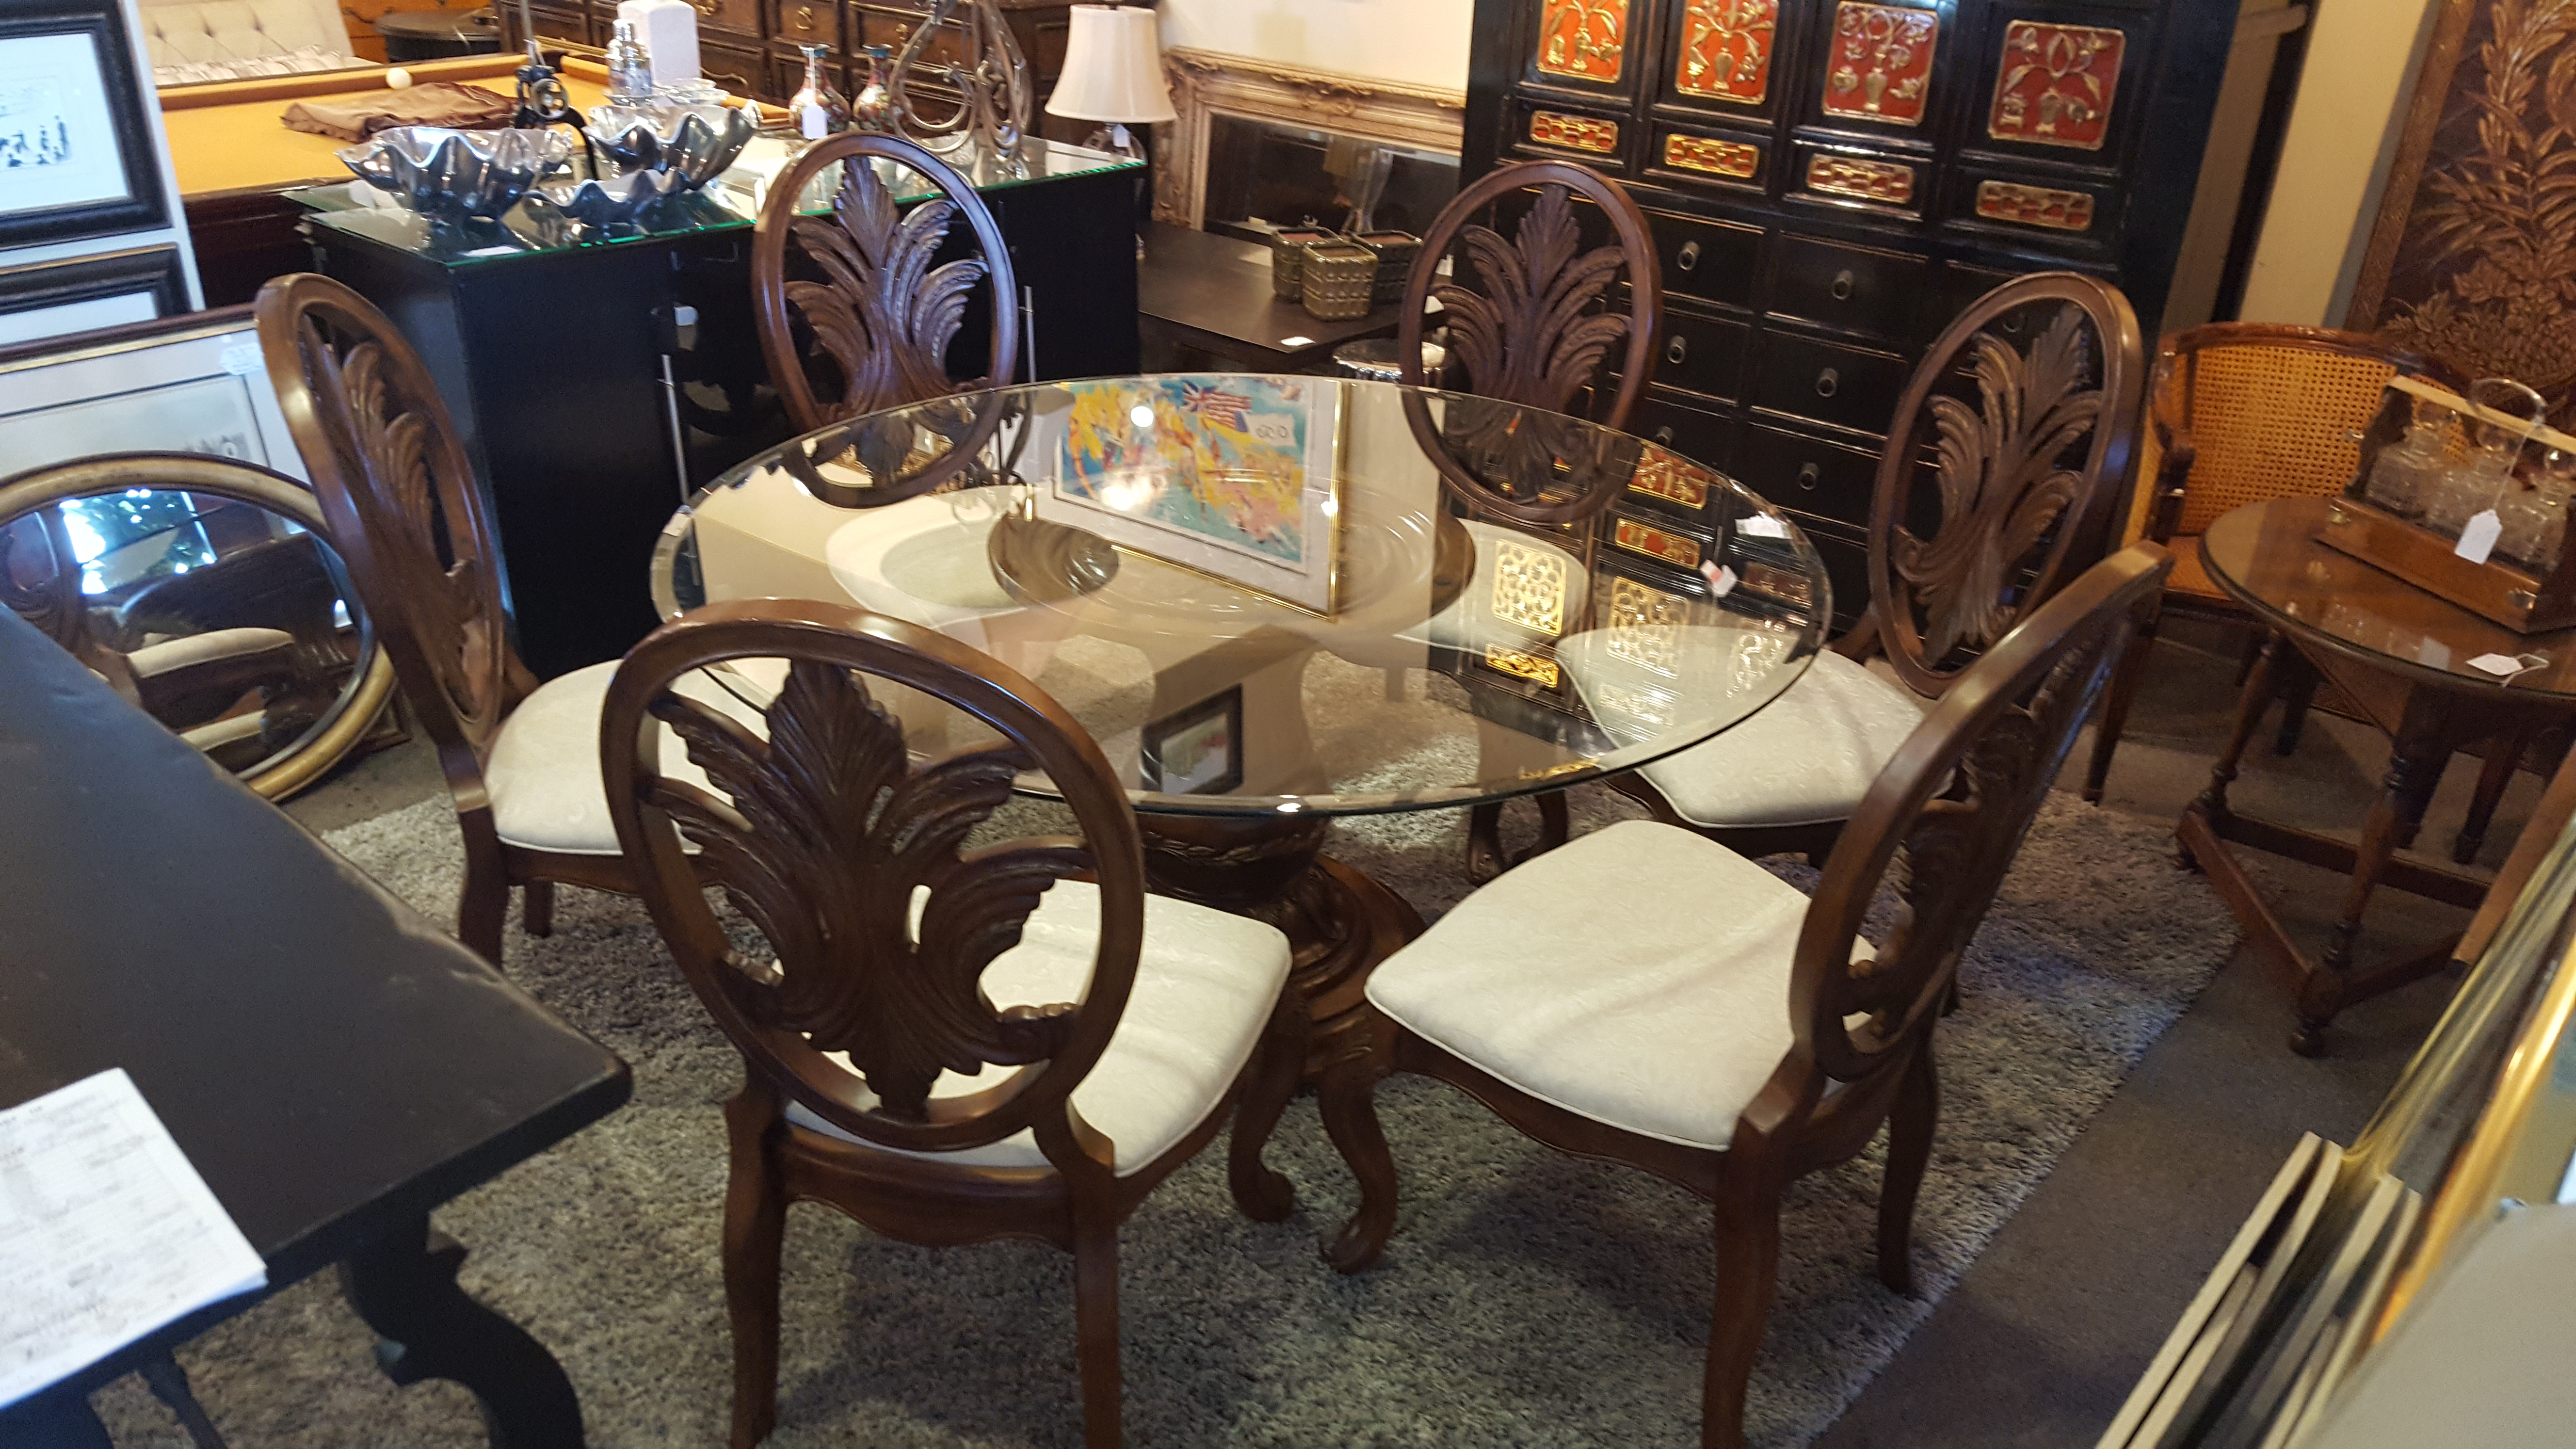 Beautiful 60 round glasas top dining Dining Price: $895.00